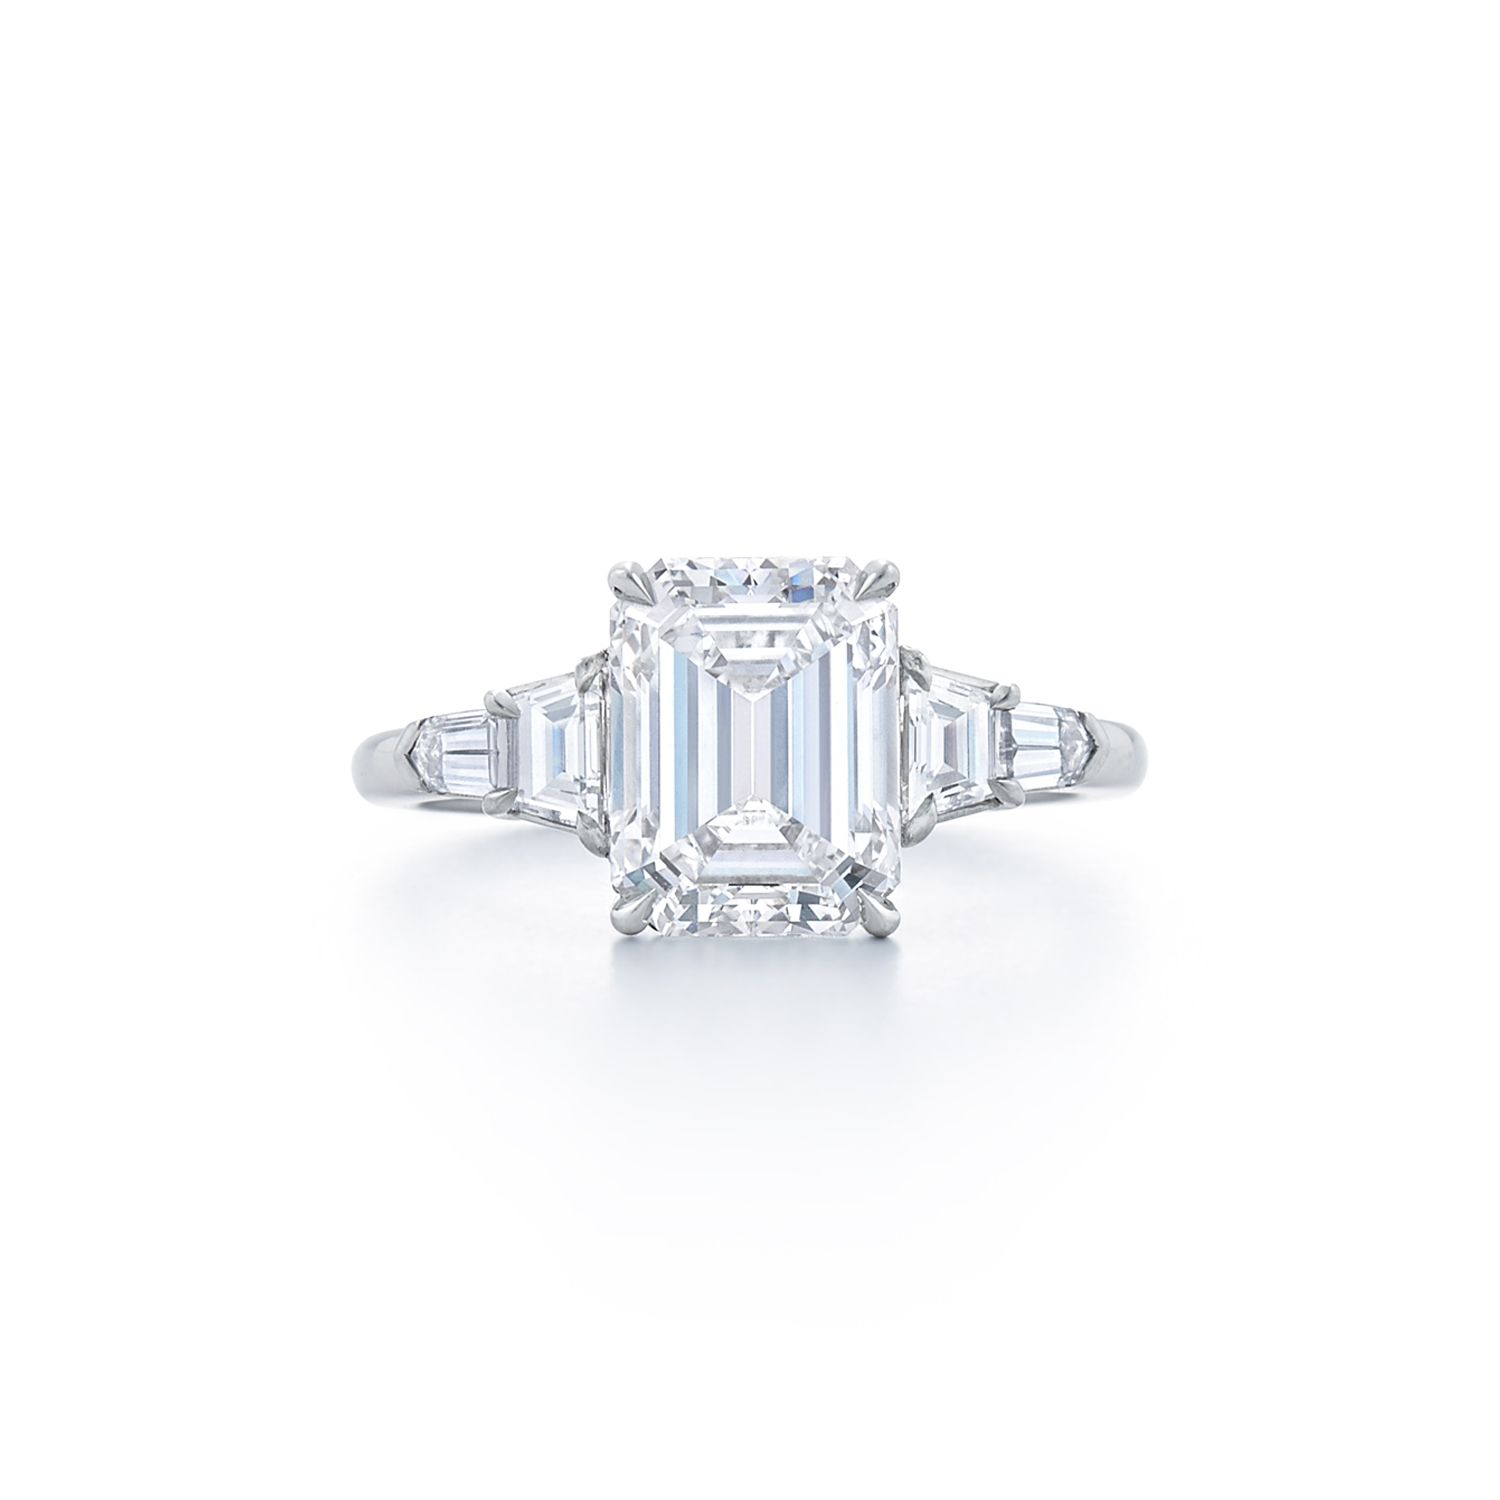 Emerald cut diamond ring with trapezoid and bullet side stones set